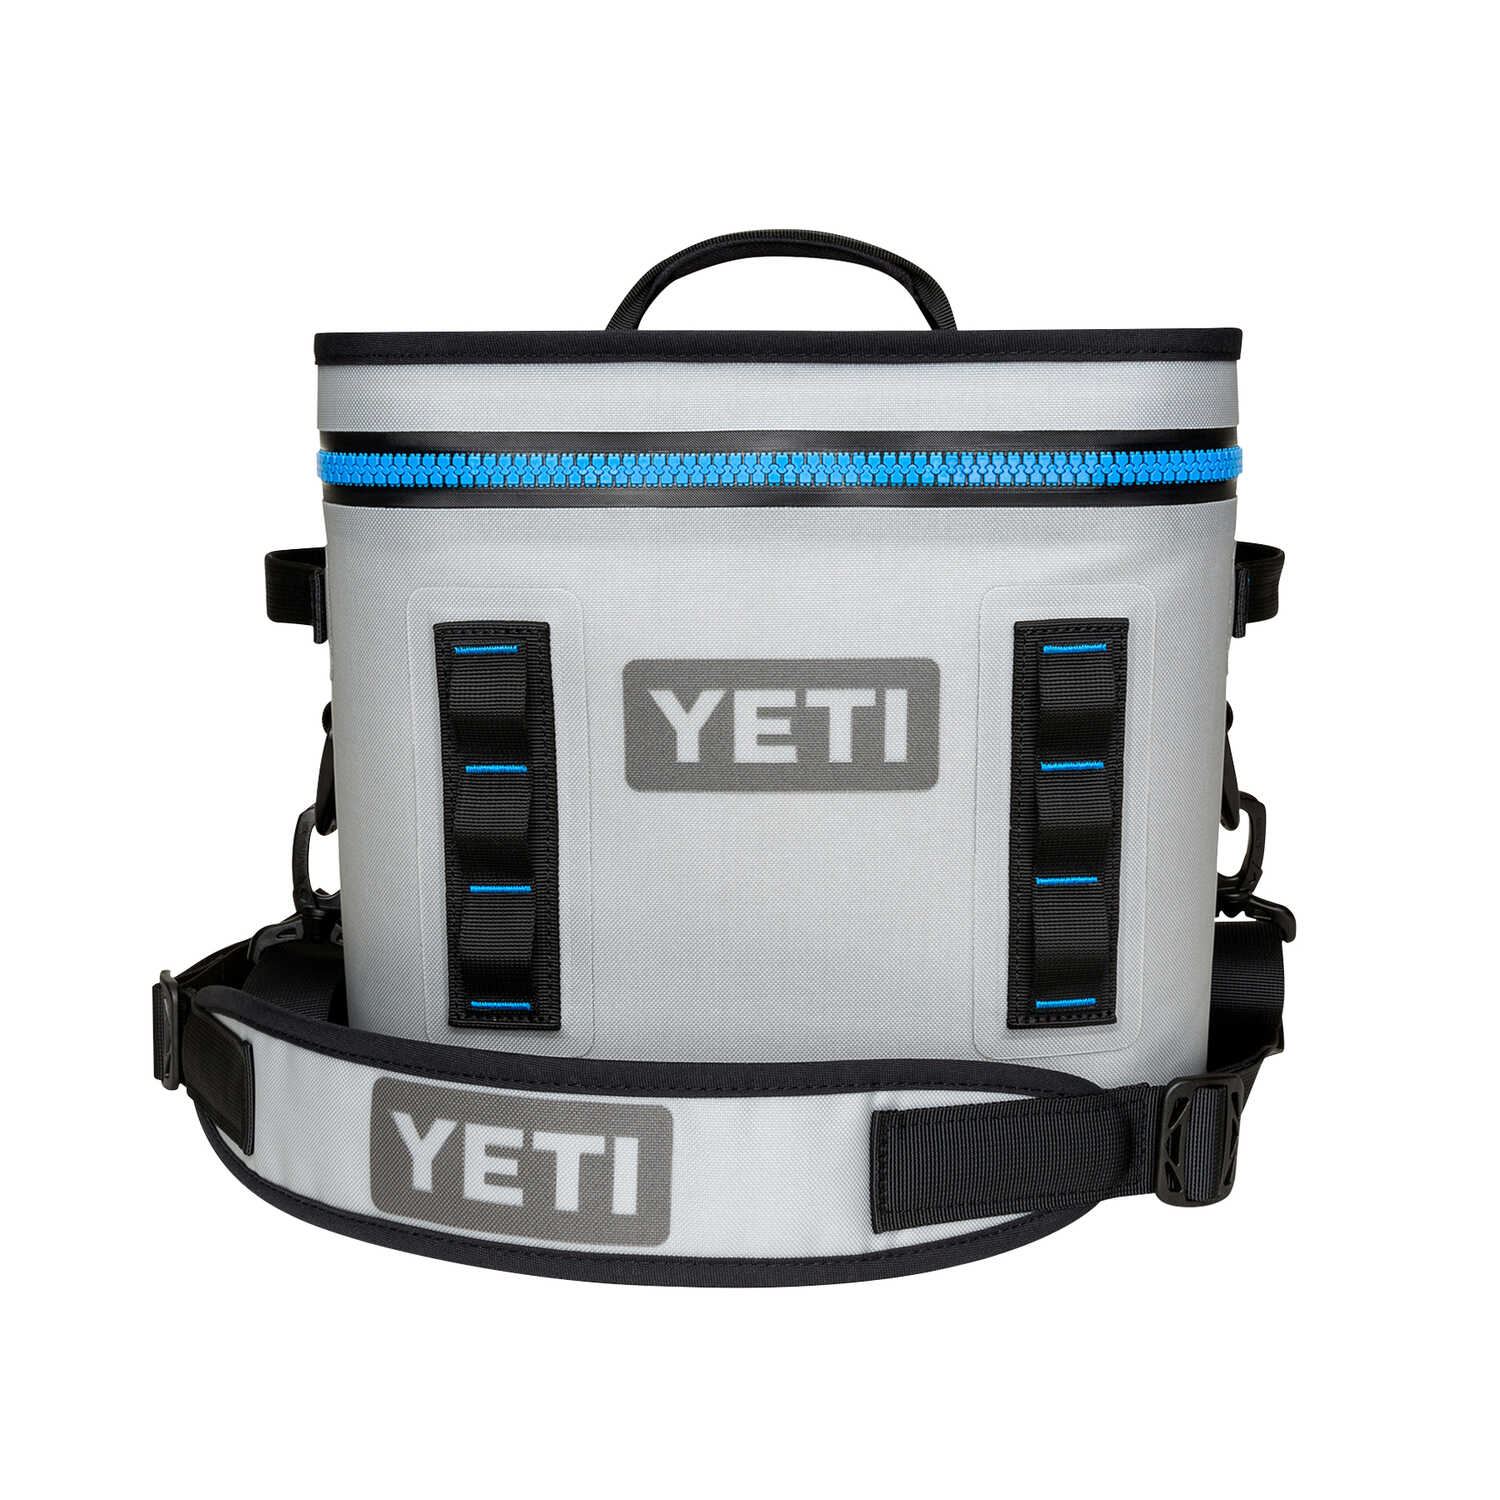 YETI  Cooler  12 cans Gray  1 pk